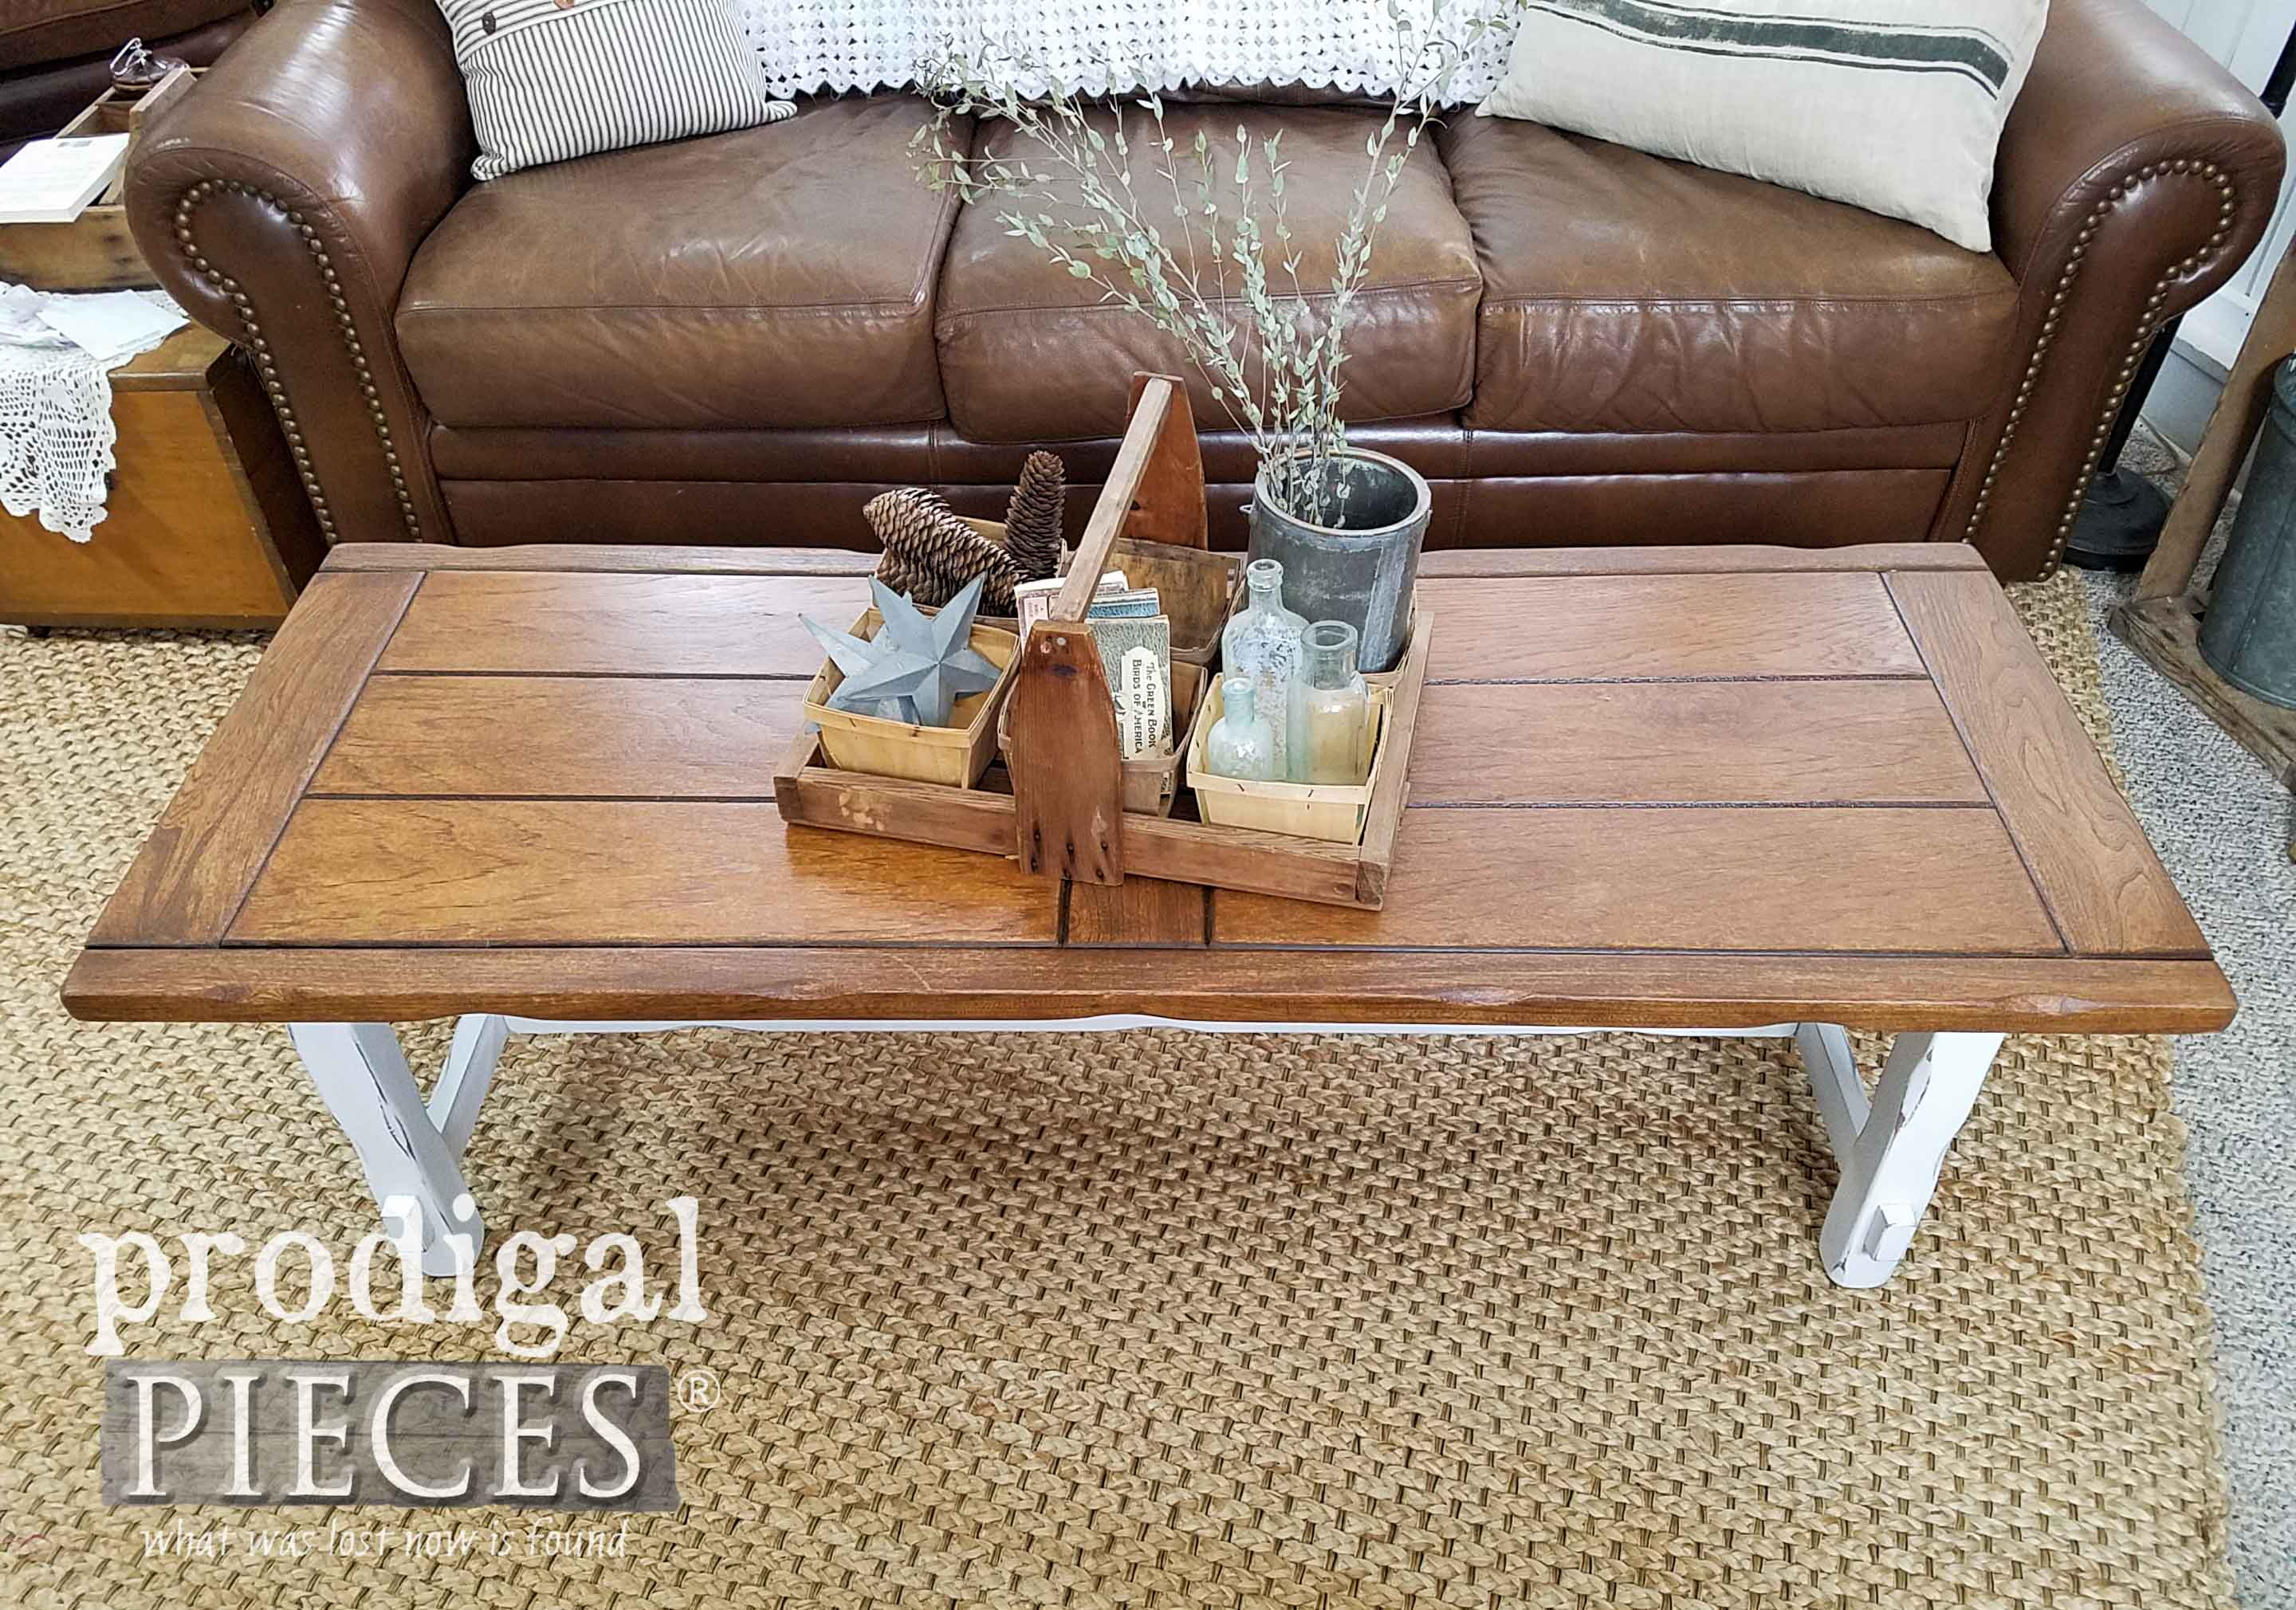 Farmhouse Coffee Table Top Refinished by Larissa of Prodigal Pieces | prodigalpieces.com